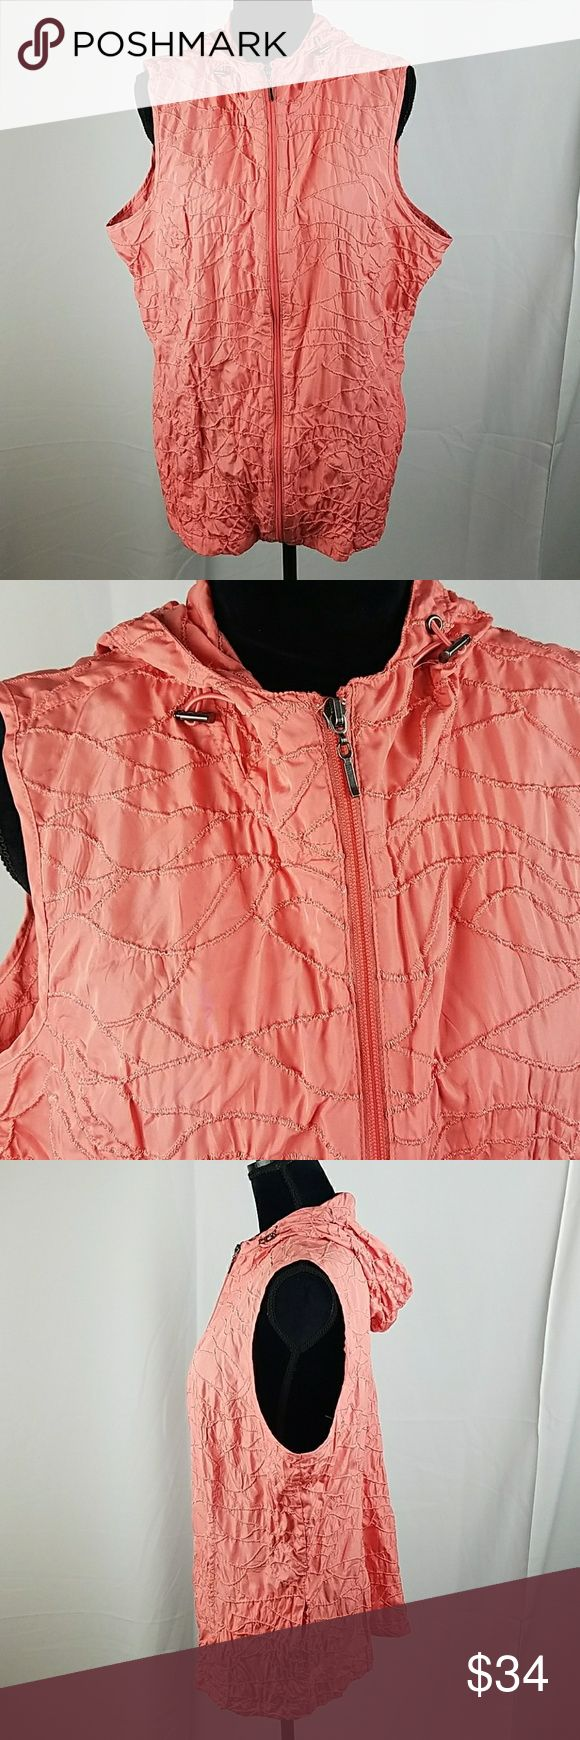 "Weekends by Chico's women XL orange zip up vest Weekends by Chico's women XL orange zip up vest textured hooded.  Under arm to under arm: 25.5"" Length: 28.5"" Chico's Jackets & Coats Vests"